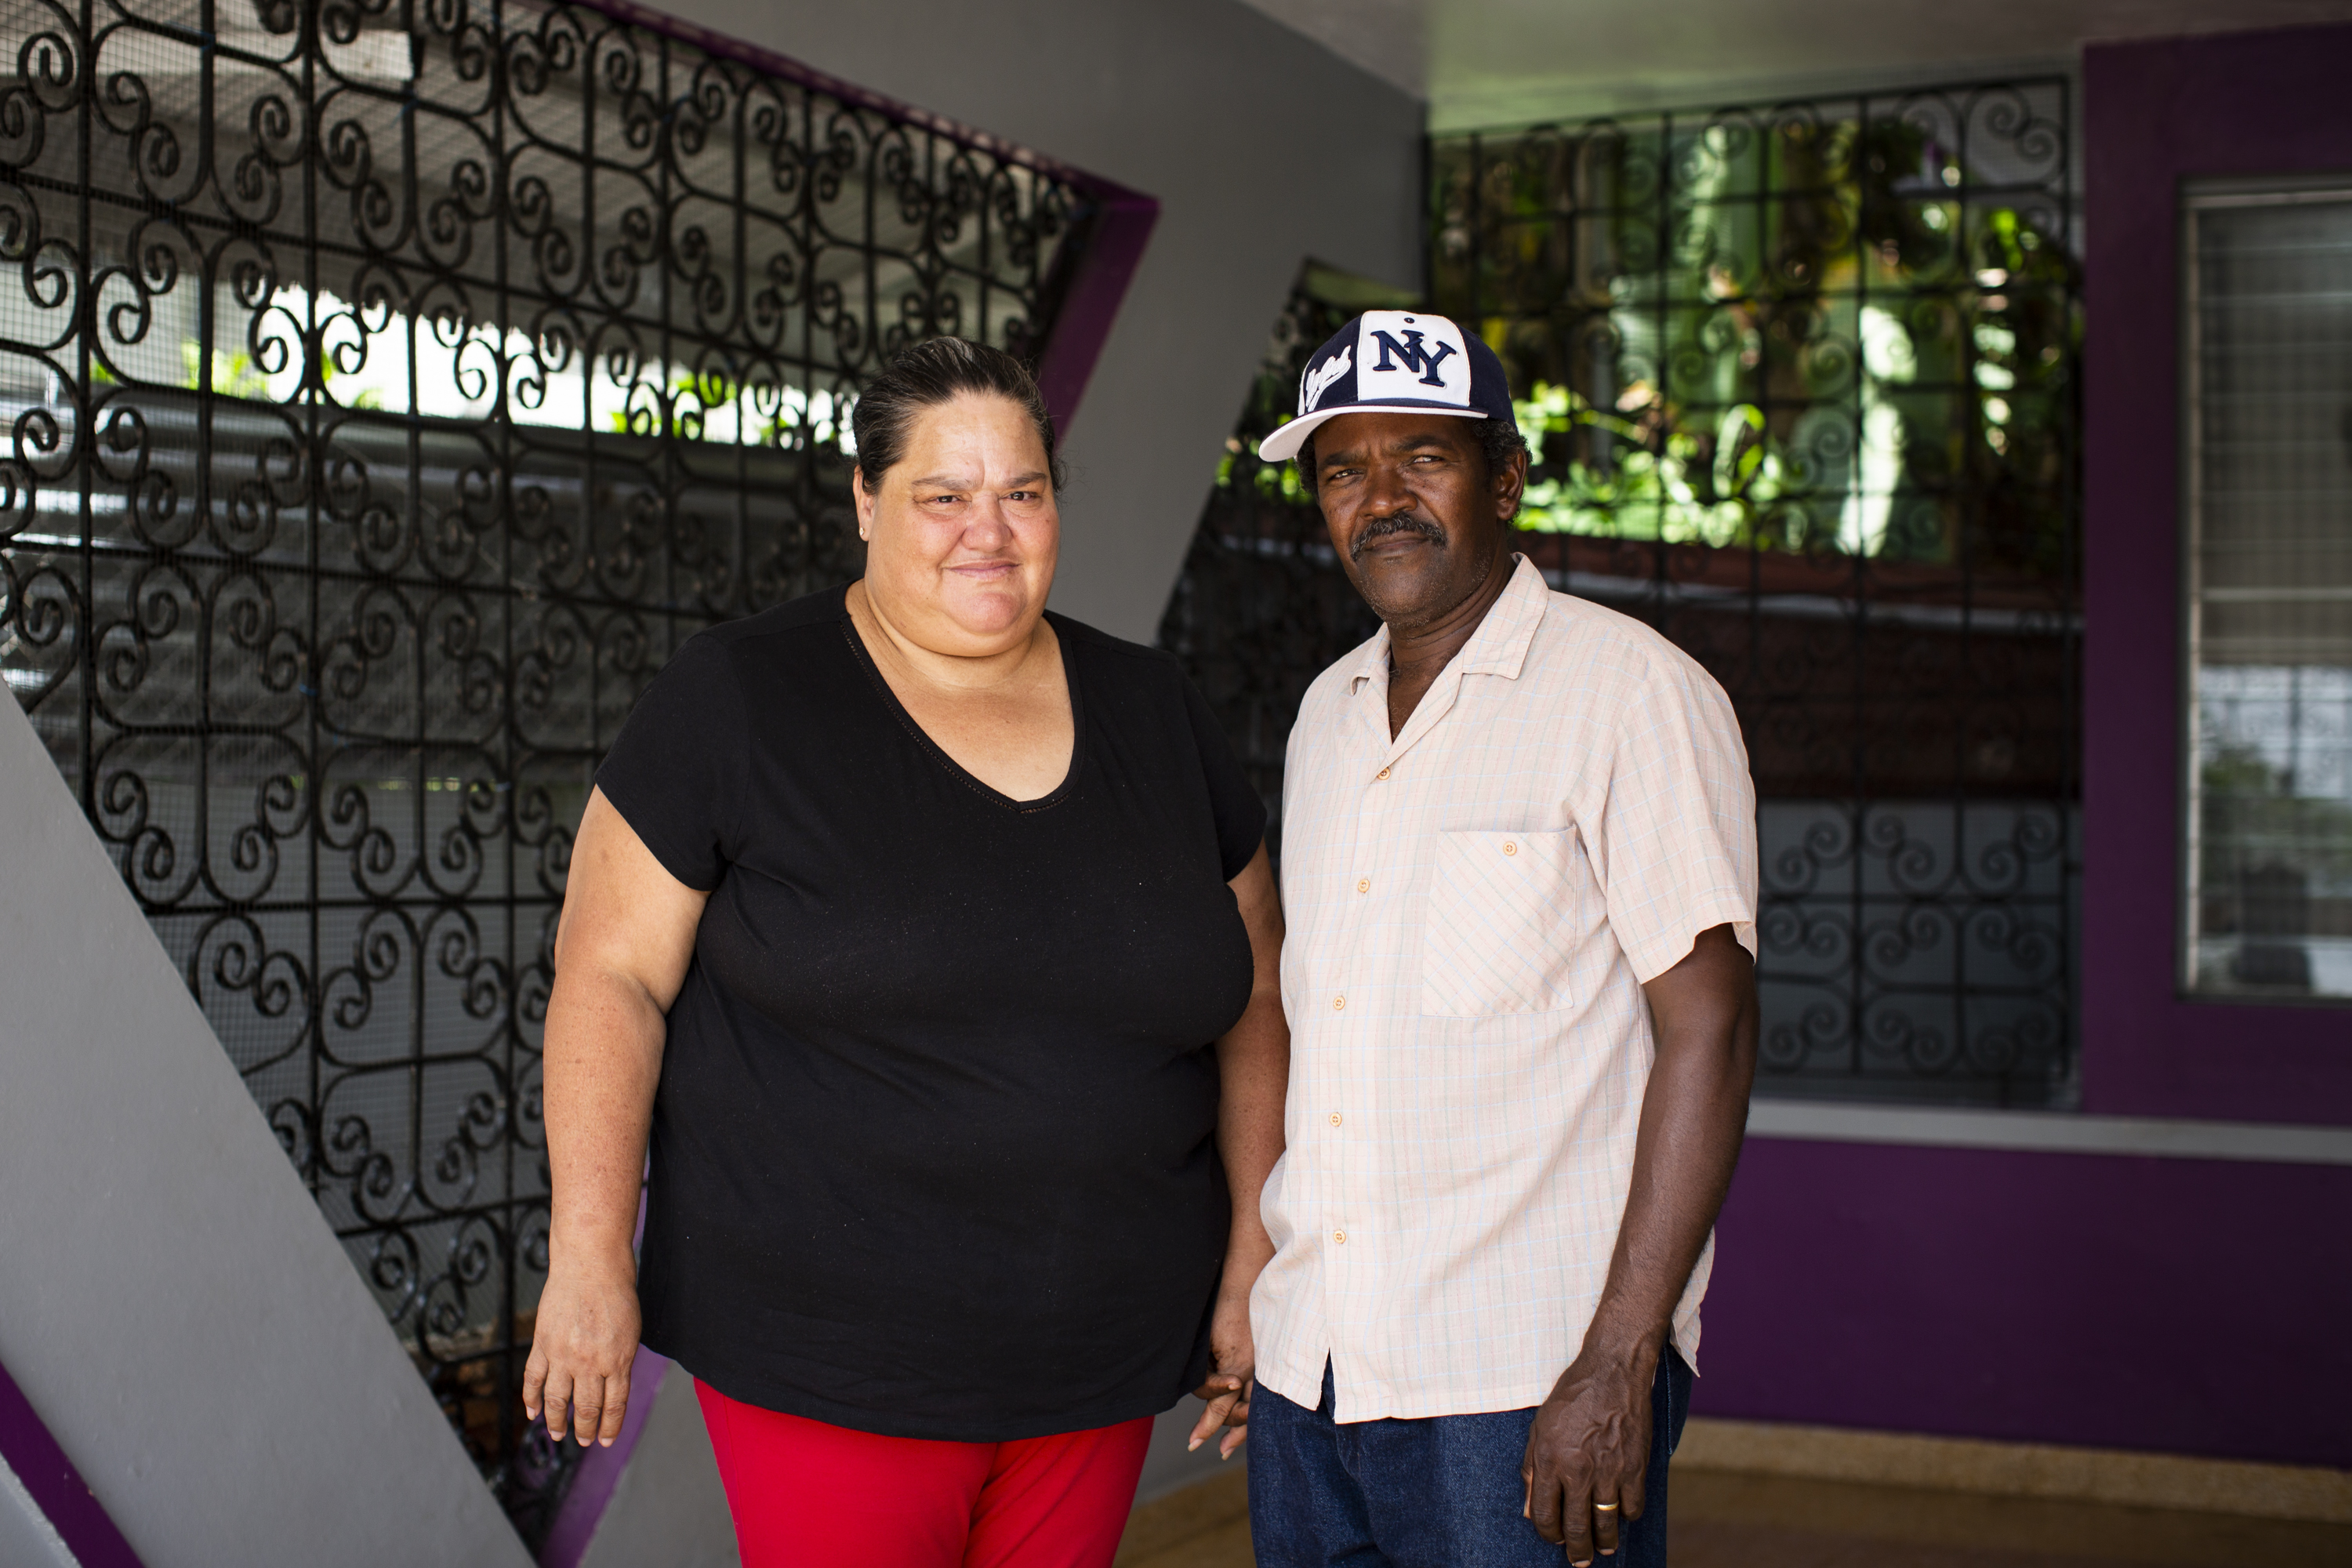 From left, Nilda Valentín, 53, and Rosario Jiménez, 55, pose for a portrait at their home in Las Marias, P.R., on September 11, 2018. The couple, who receives health care at the Migrant Health Center in town, suffered damage in the second floor of their home and have find it hard to make ends meet when the renters left. (Erika P. Rodriguez for Direct Relief)